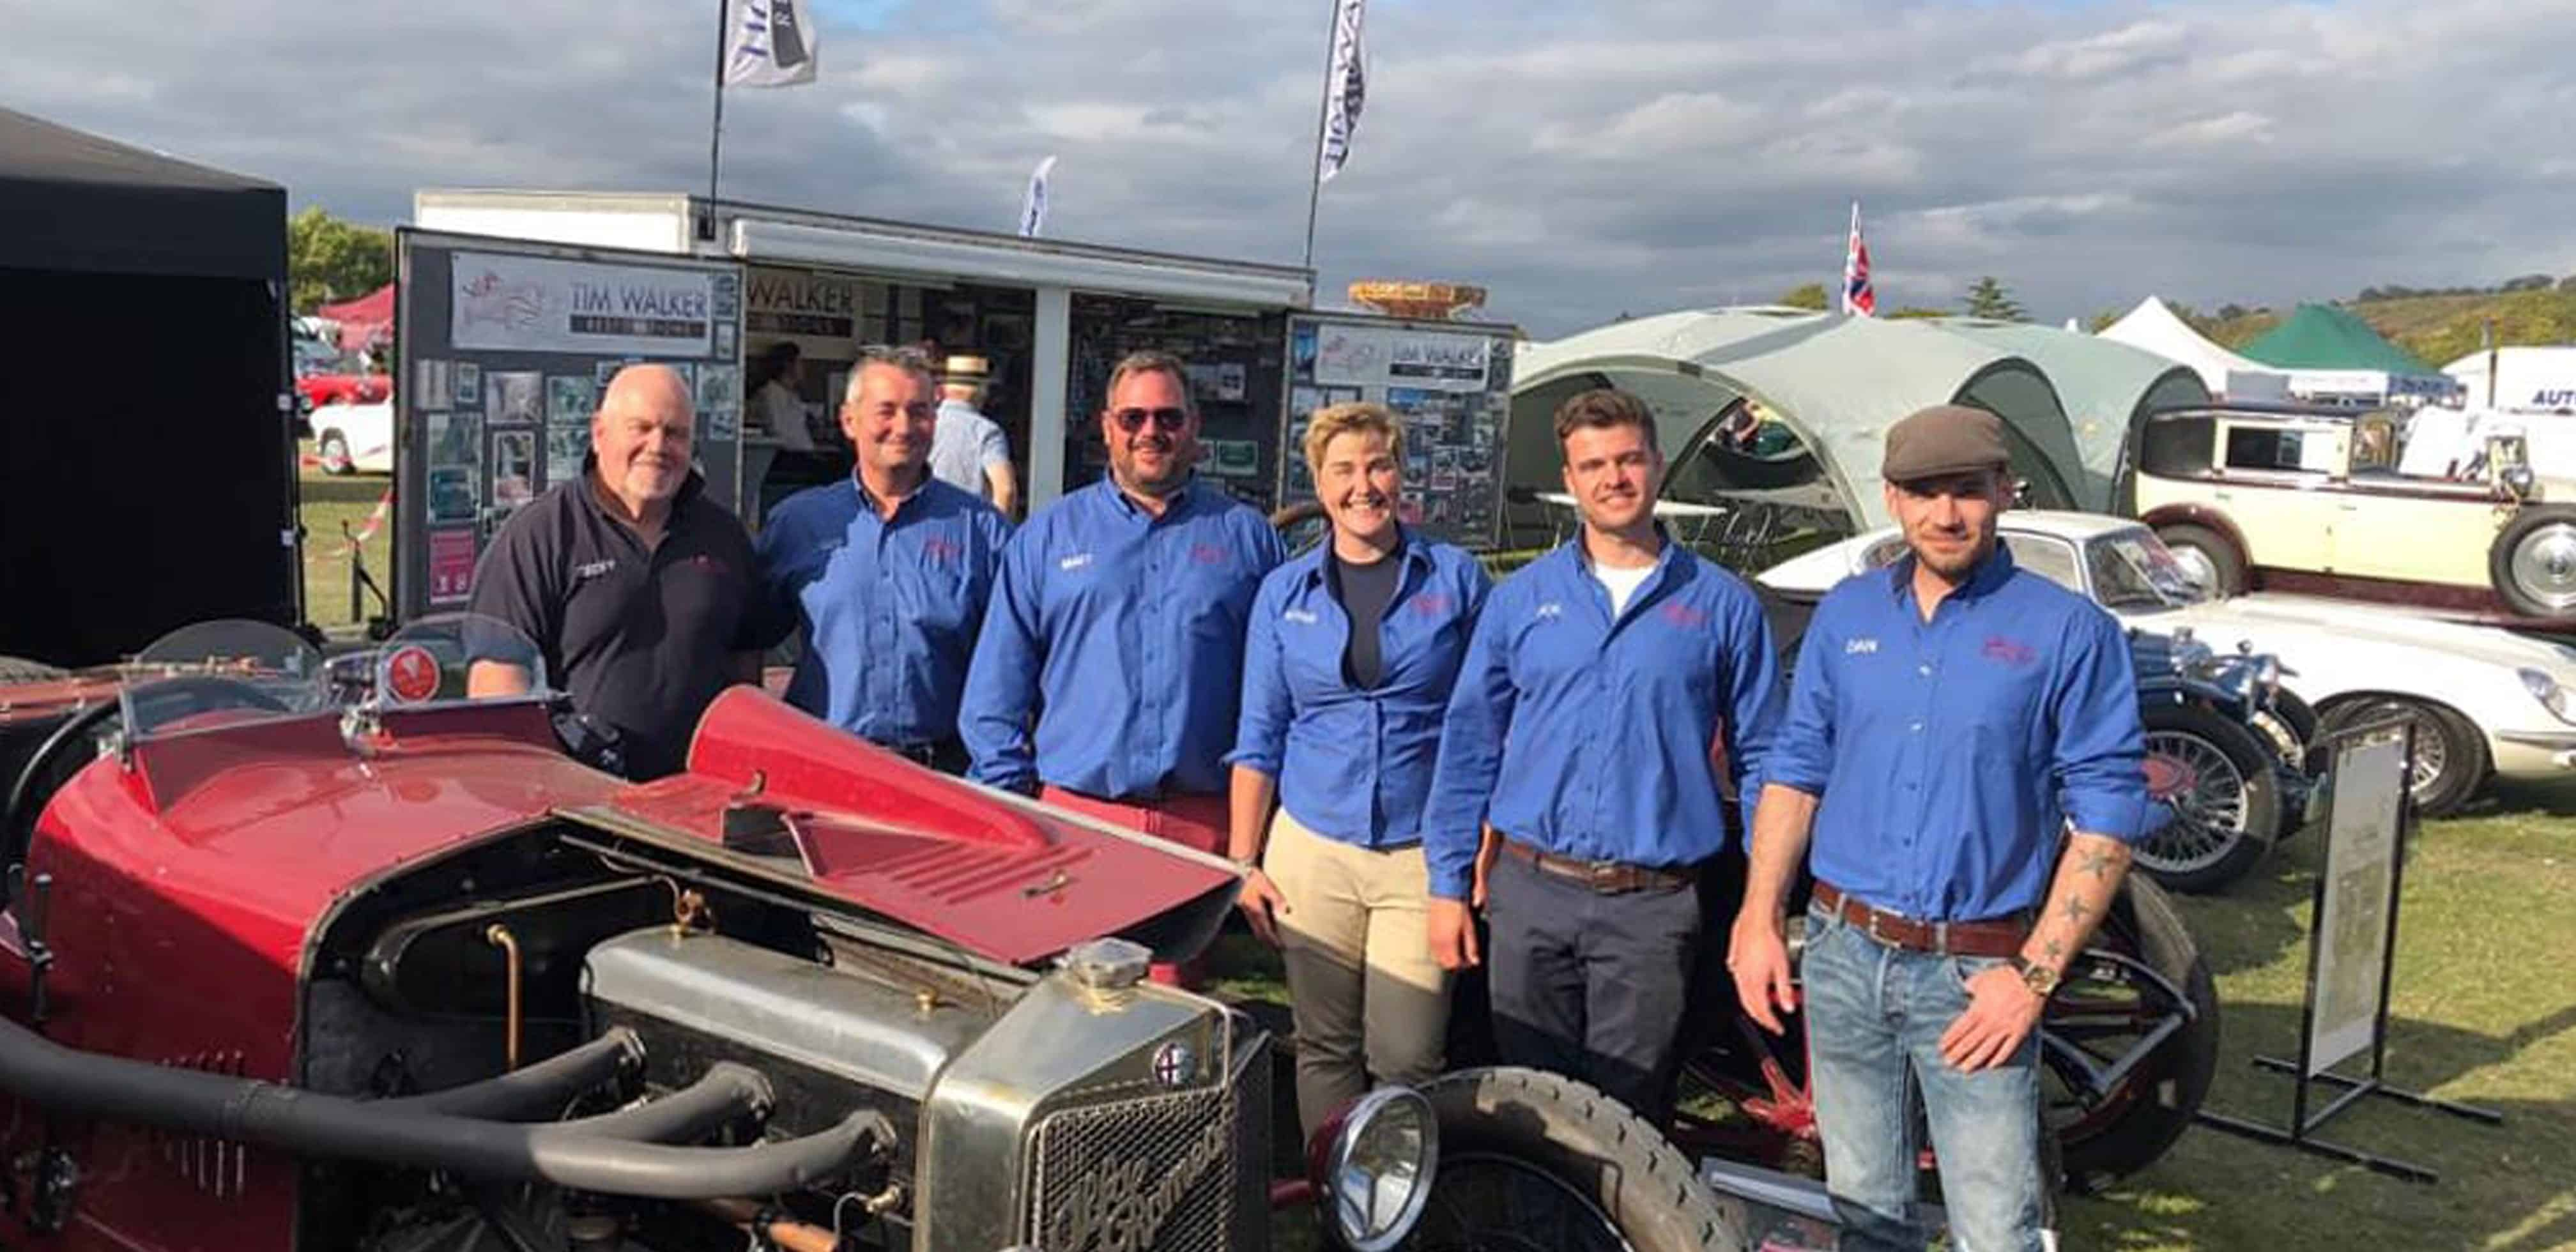 Tim Walker Restorations team at Kop Hill Climb